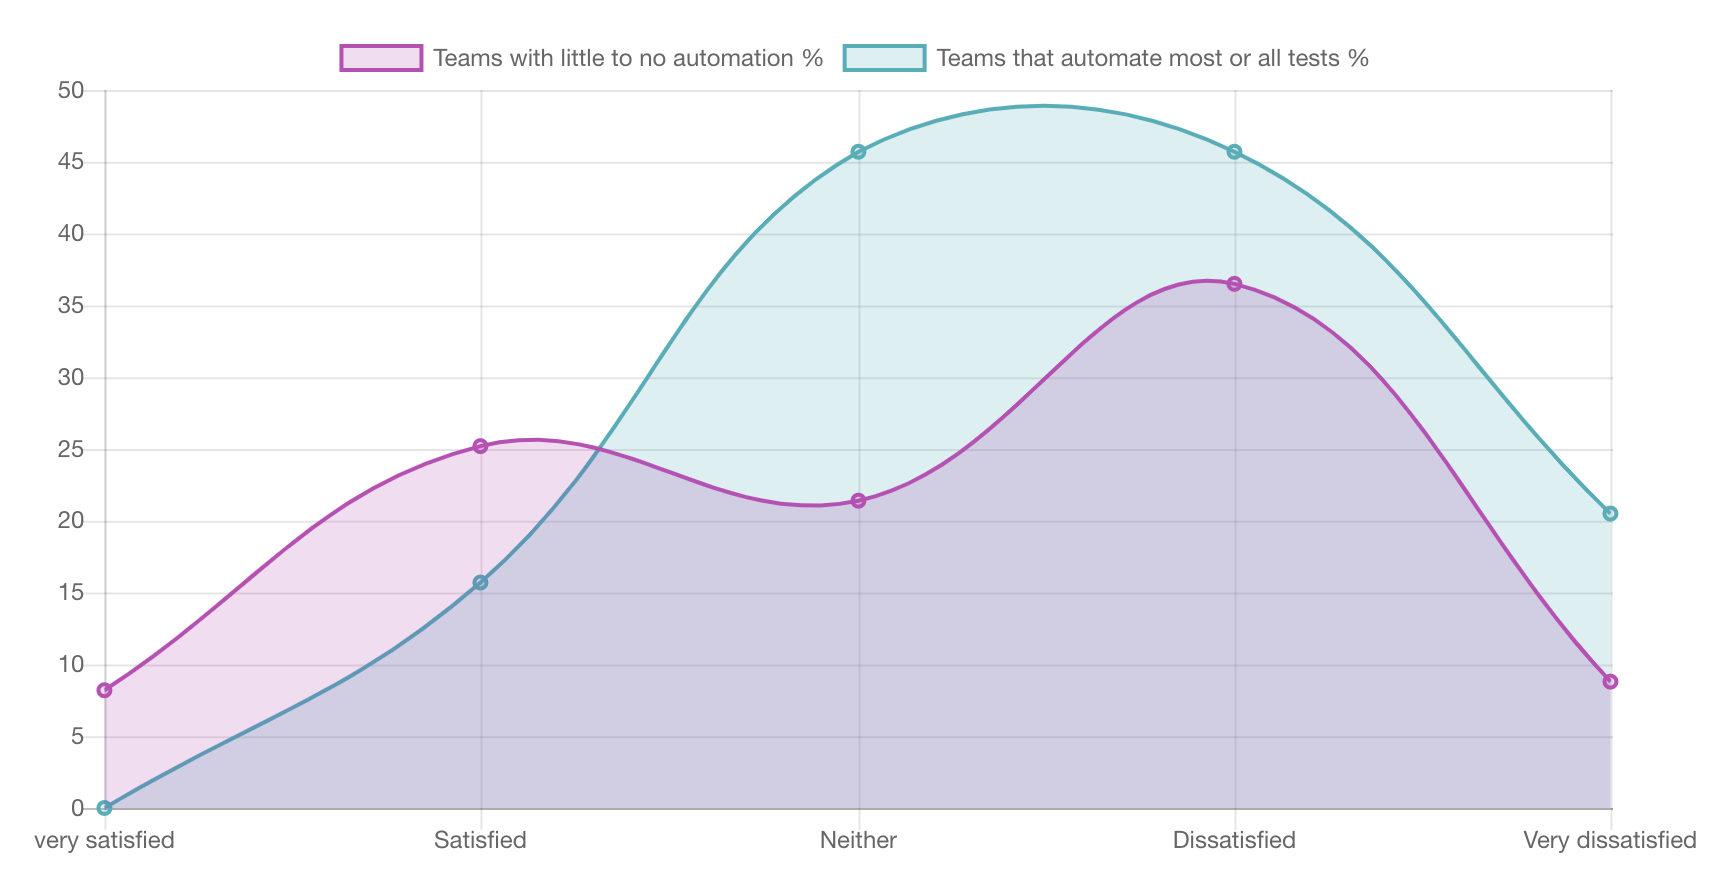 Teams that automate testing are less satisfied with their testing process